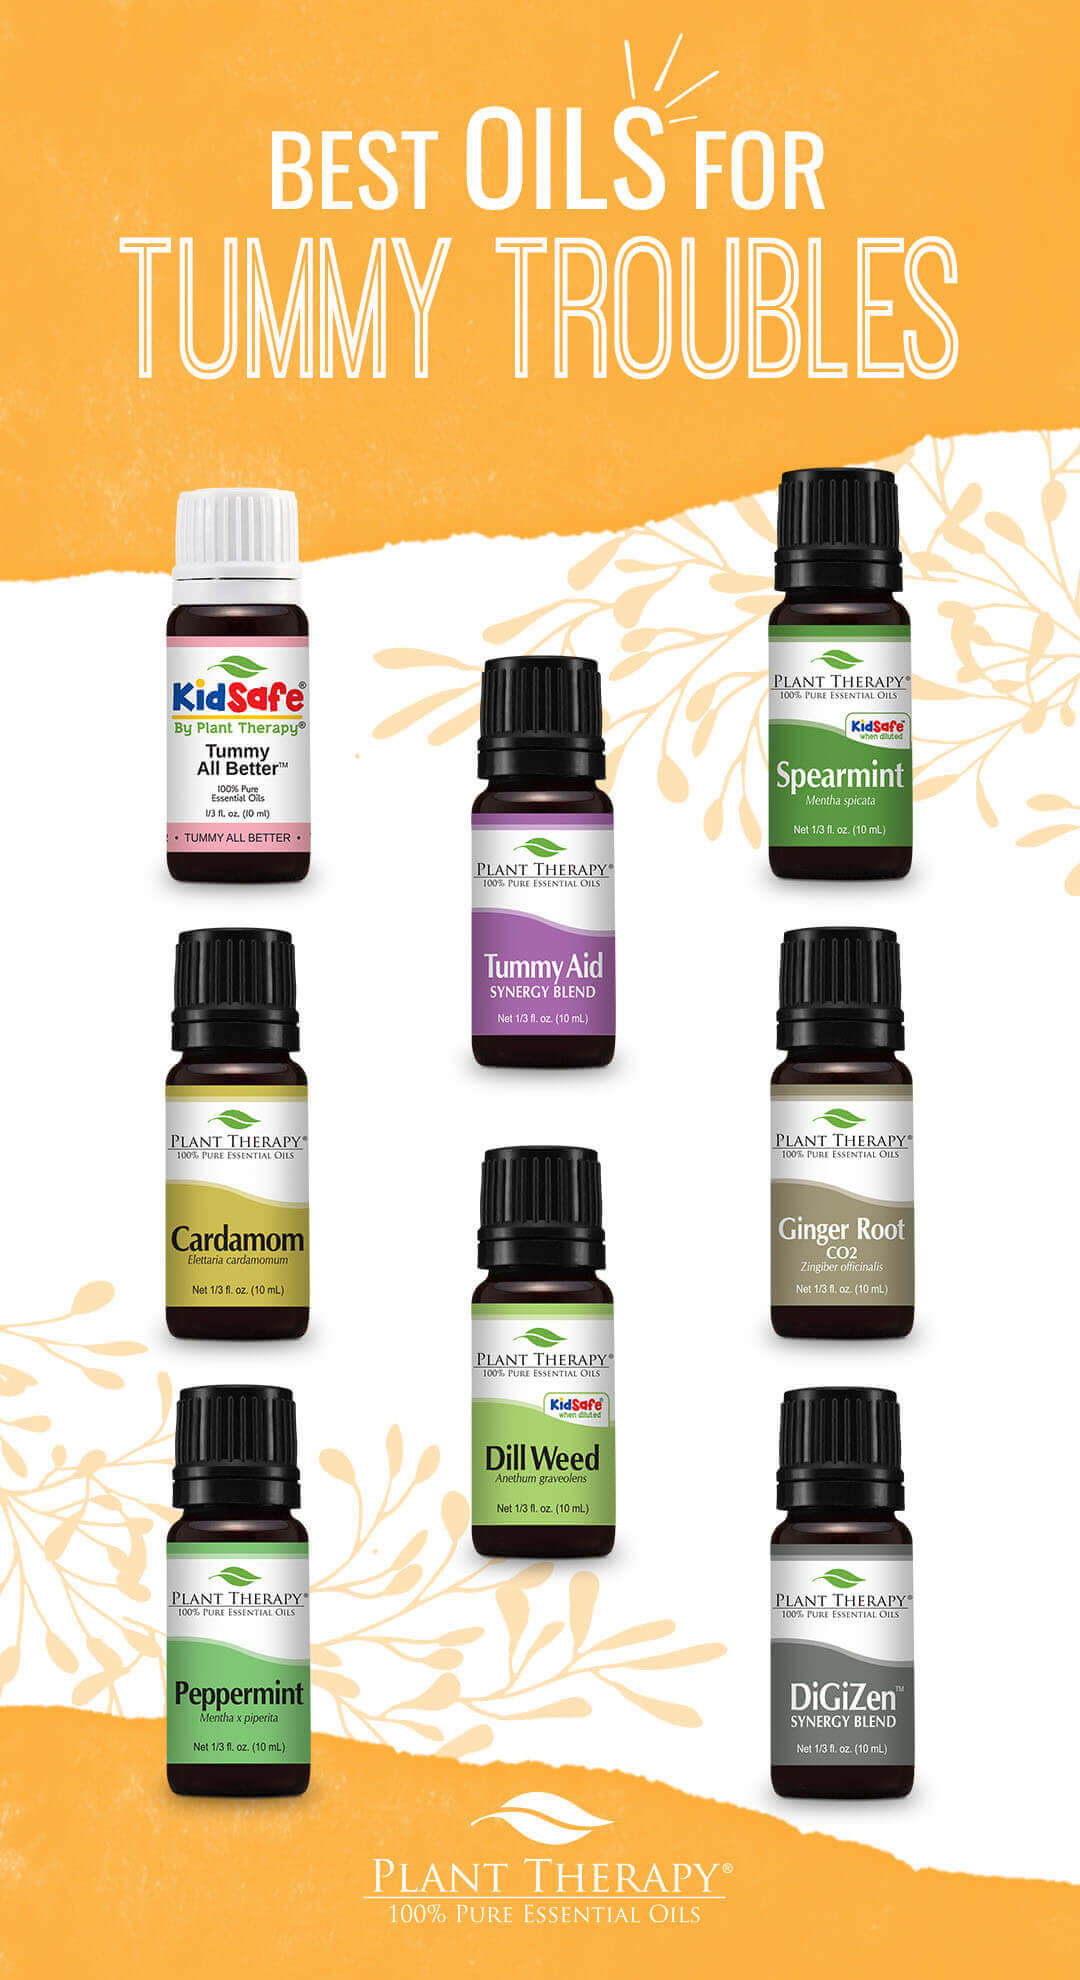 best oils for tummy troubles, cardamom, peppermint, dill weed, spearmint, ginger root